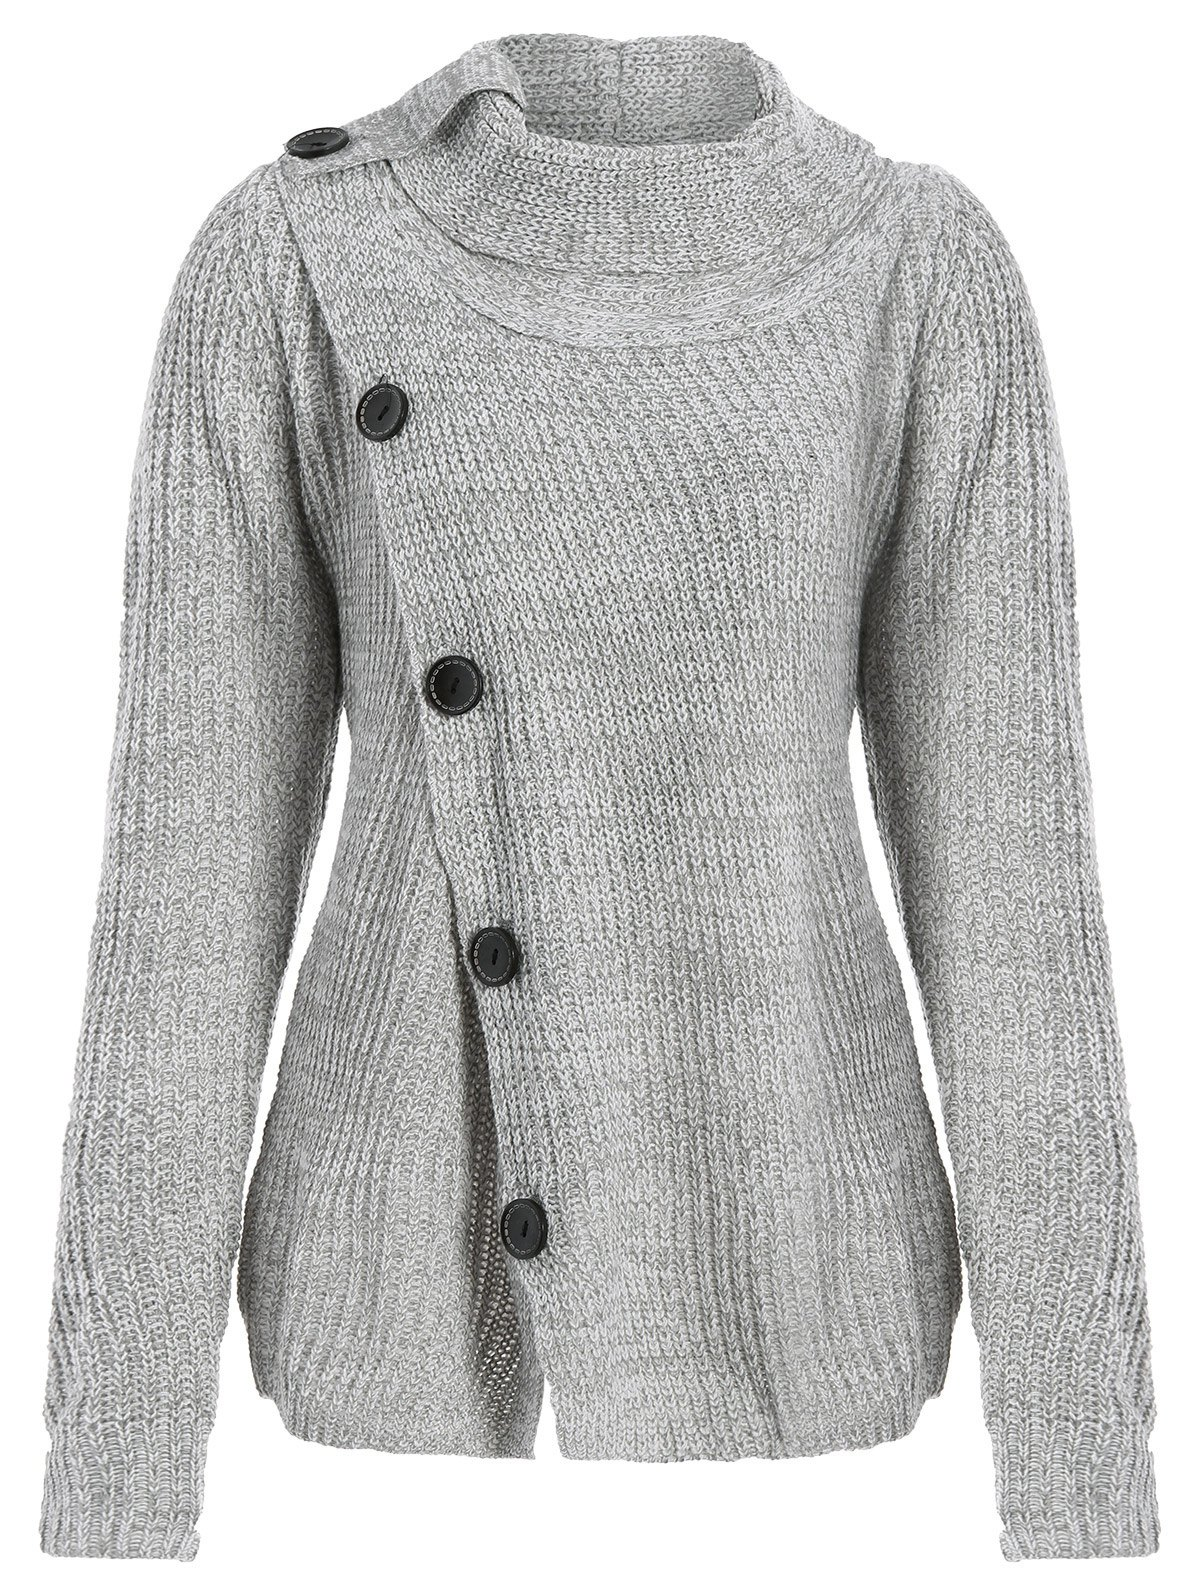 Asymmetrical Button Design Cardigan - GRAY XL